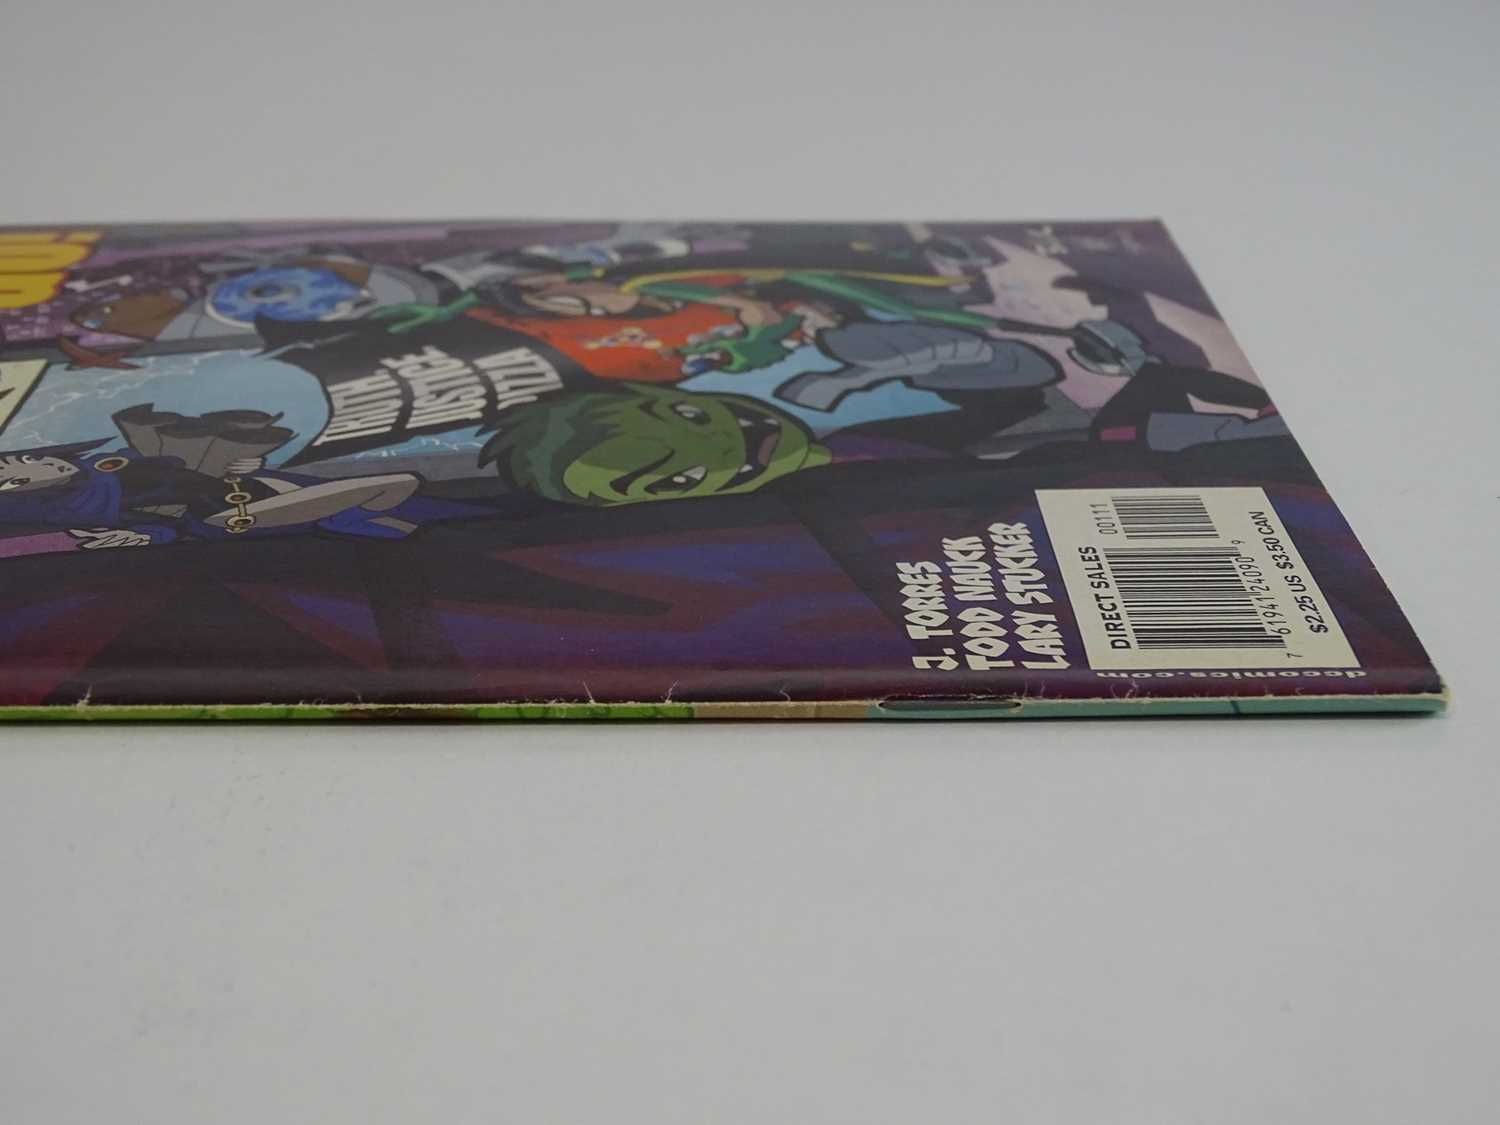 TEEN TITANS GO #1 - (2004 - DC) - First Printing - RARE - Comic book series based on the hit - Image 9 of 9